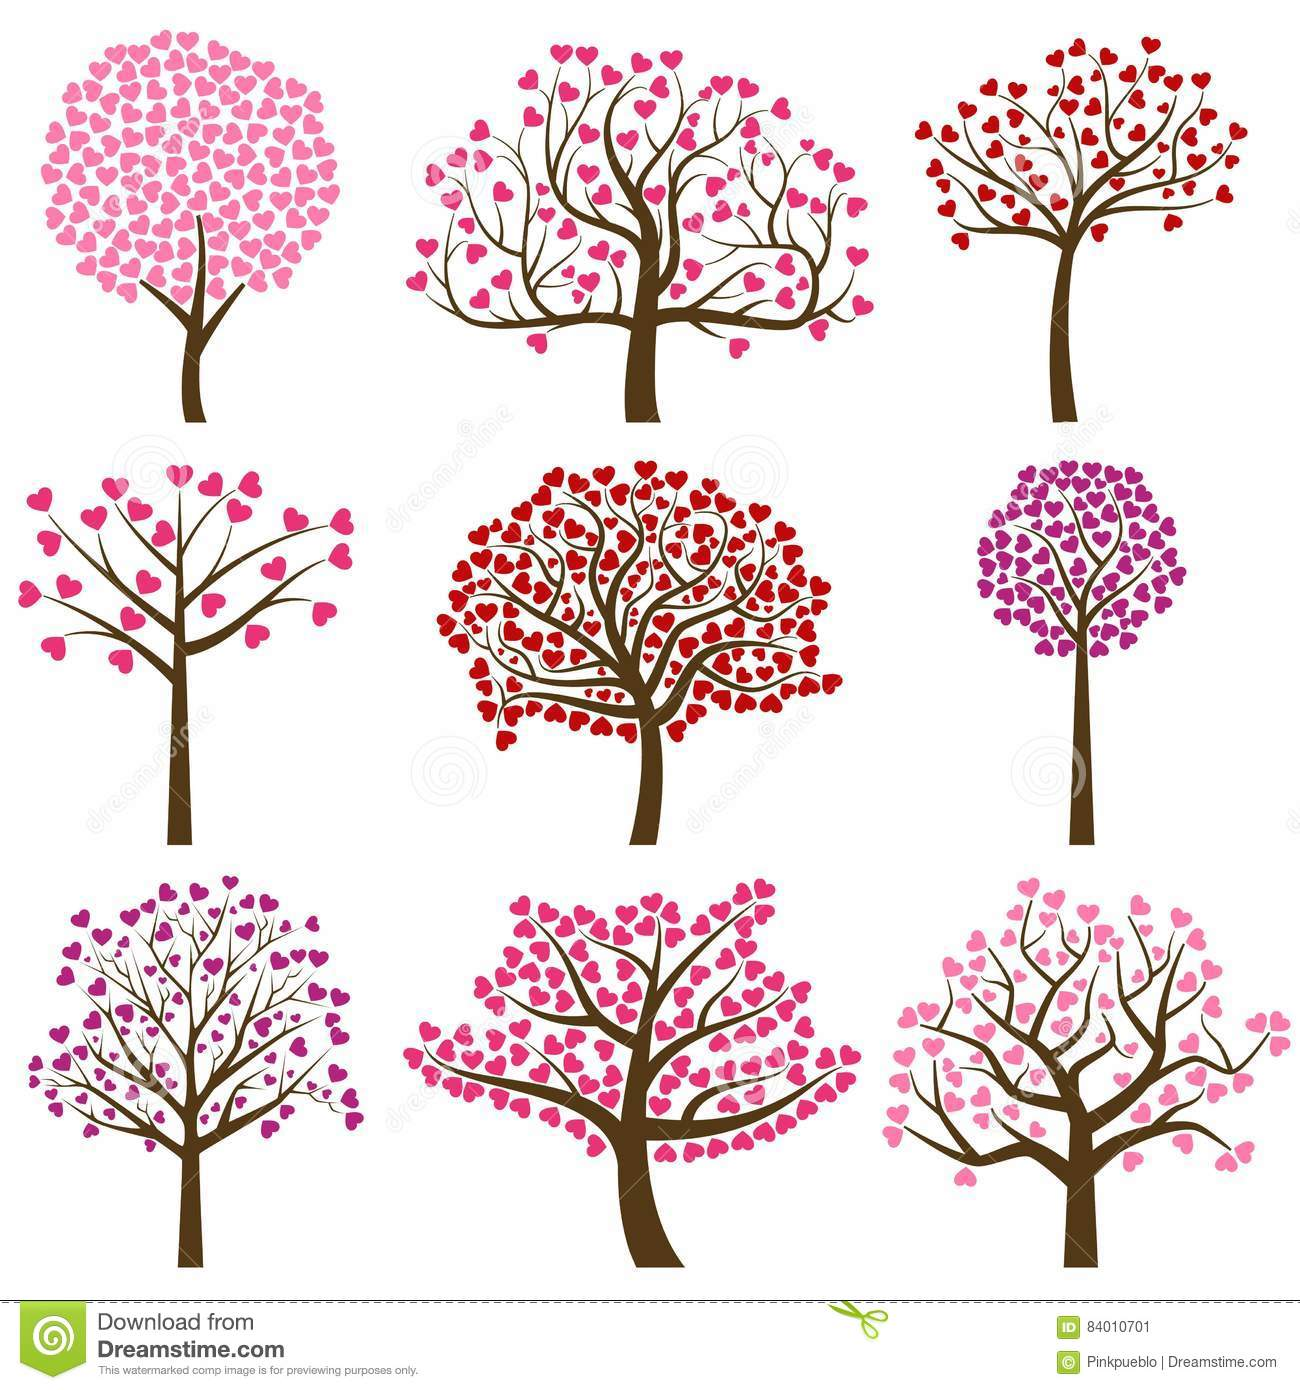 Valentines Day Tree Silhouettes With Heart Shaped Leaves Vector